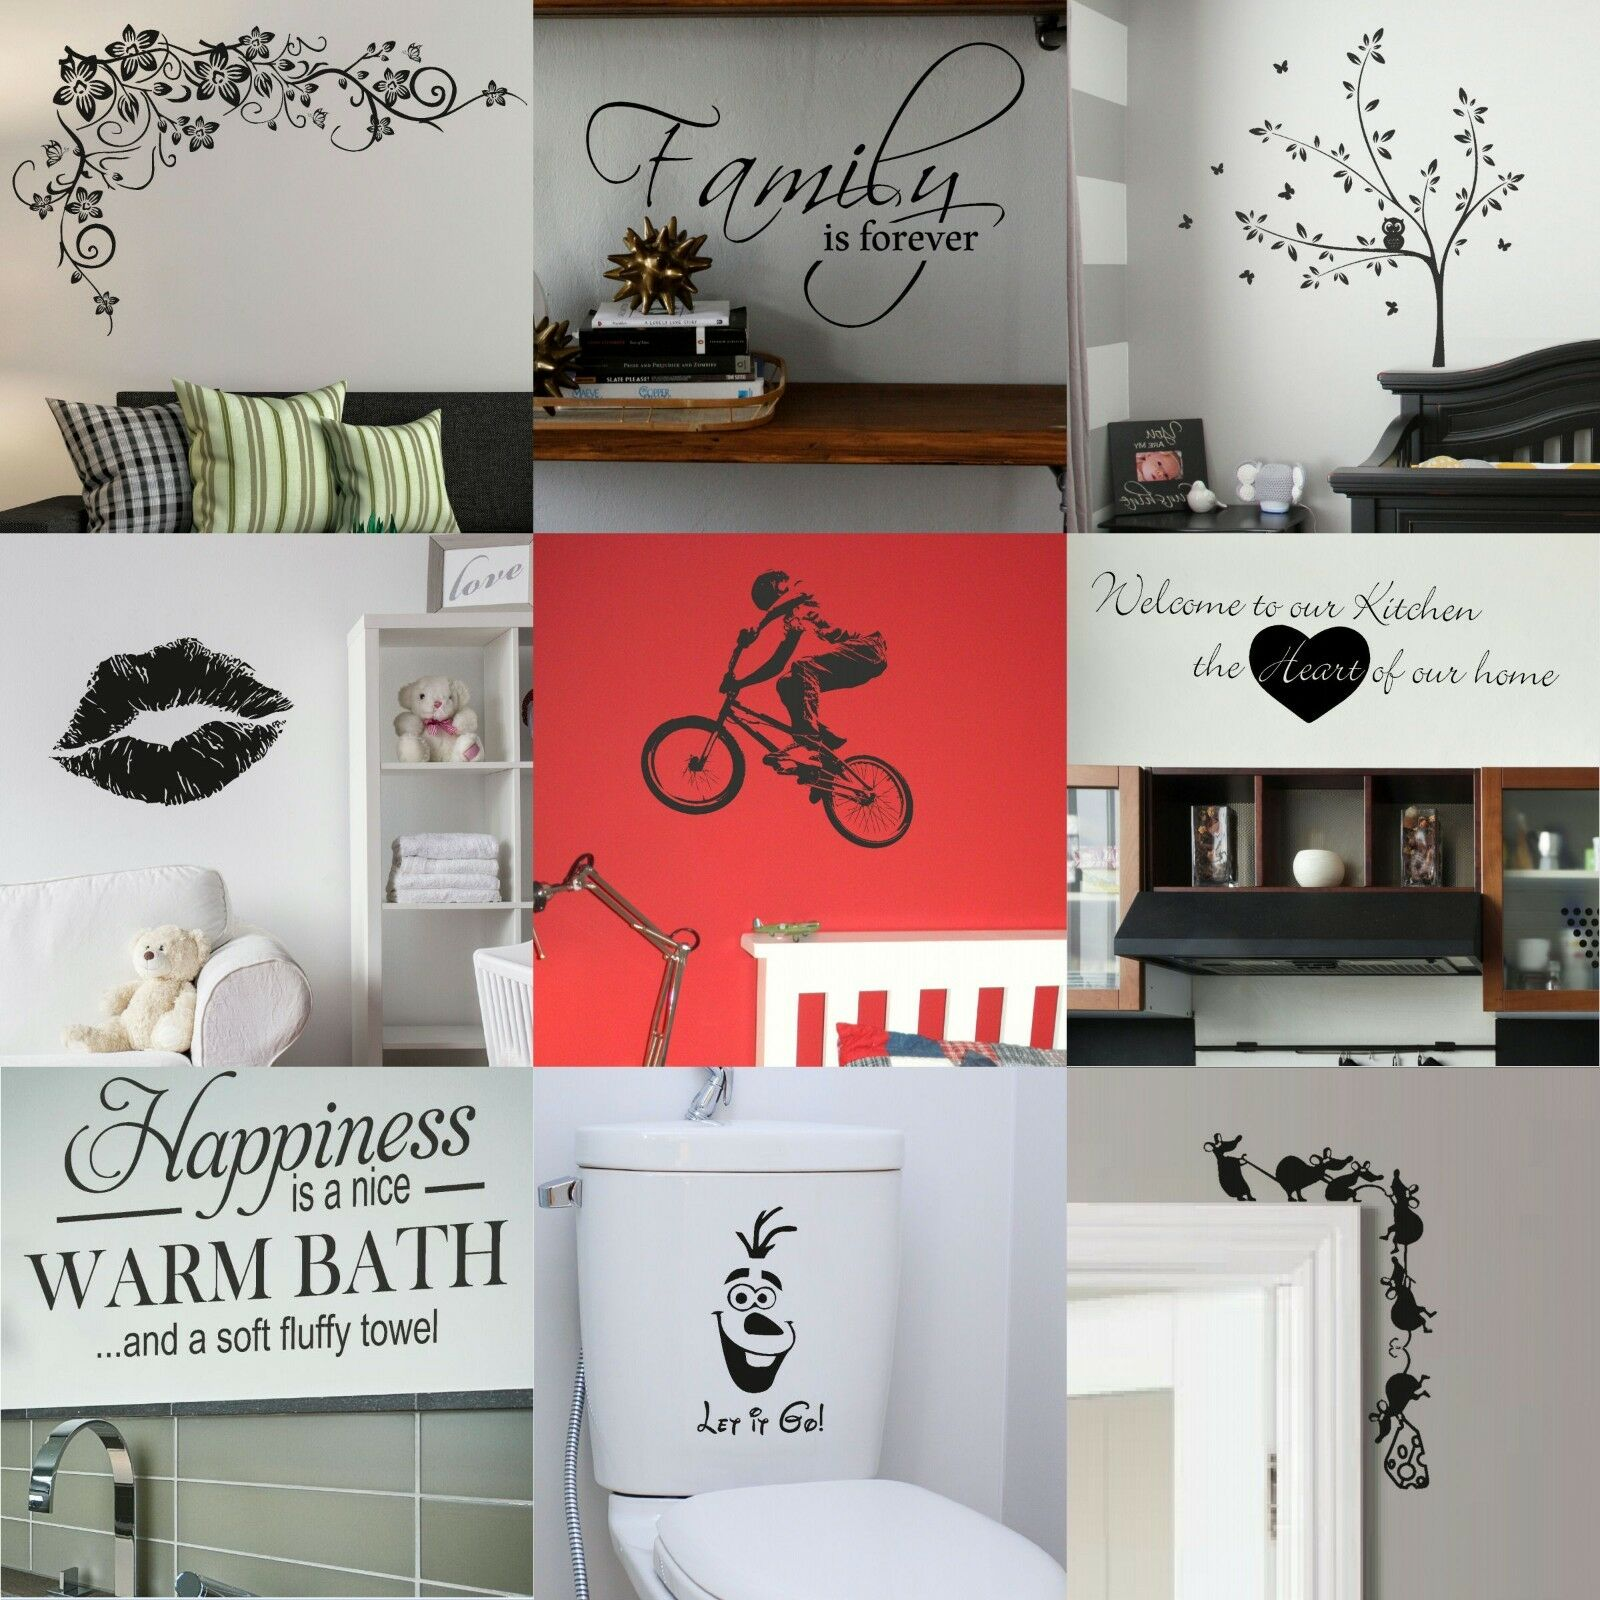 Home Decoration - VINYL WALL STICKERS! Interior Home Art Decor Quote Removable Decal Transfer UK